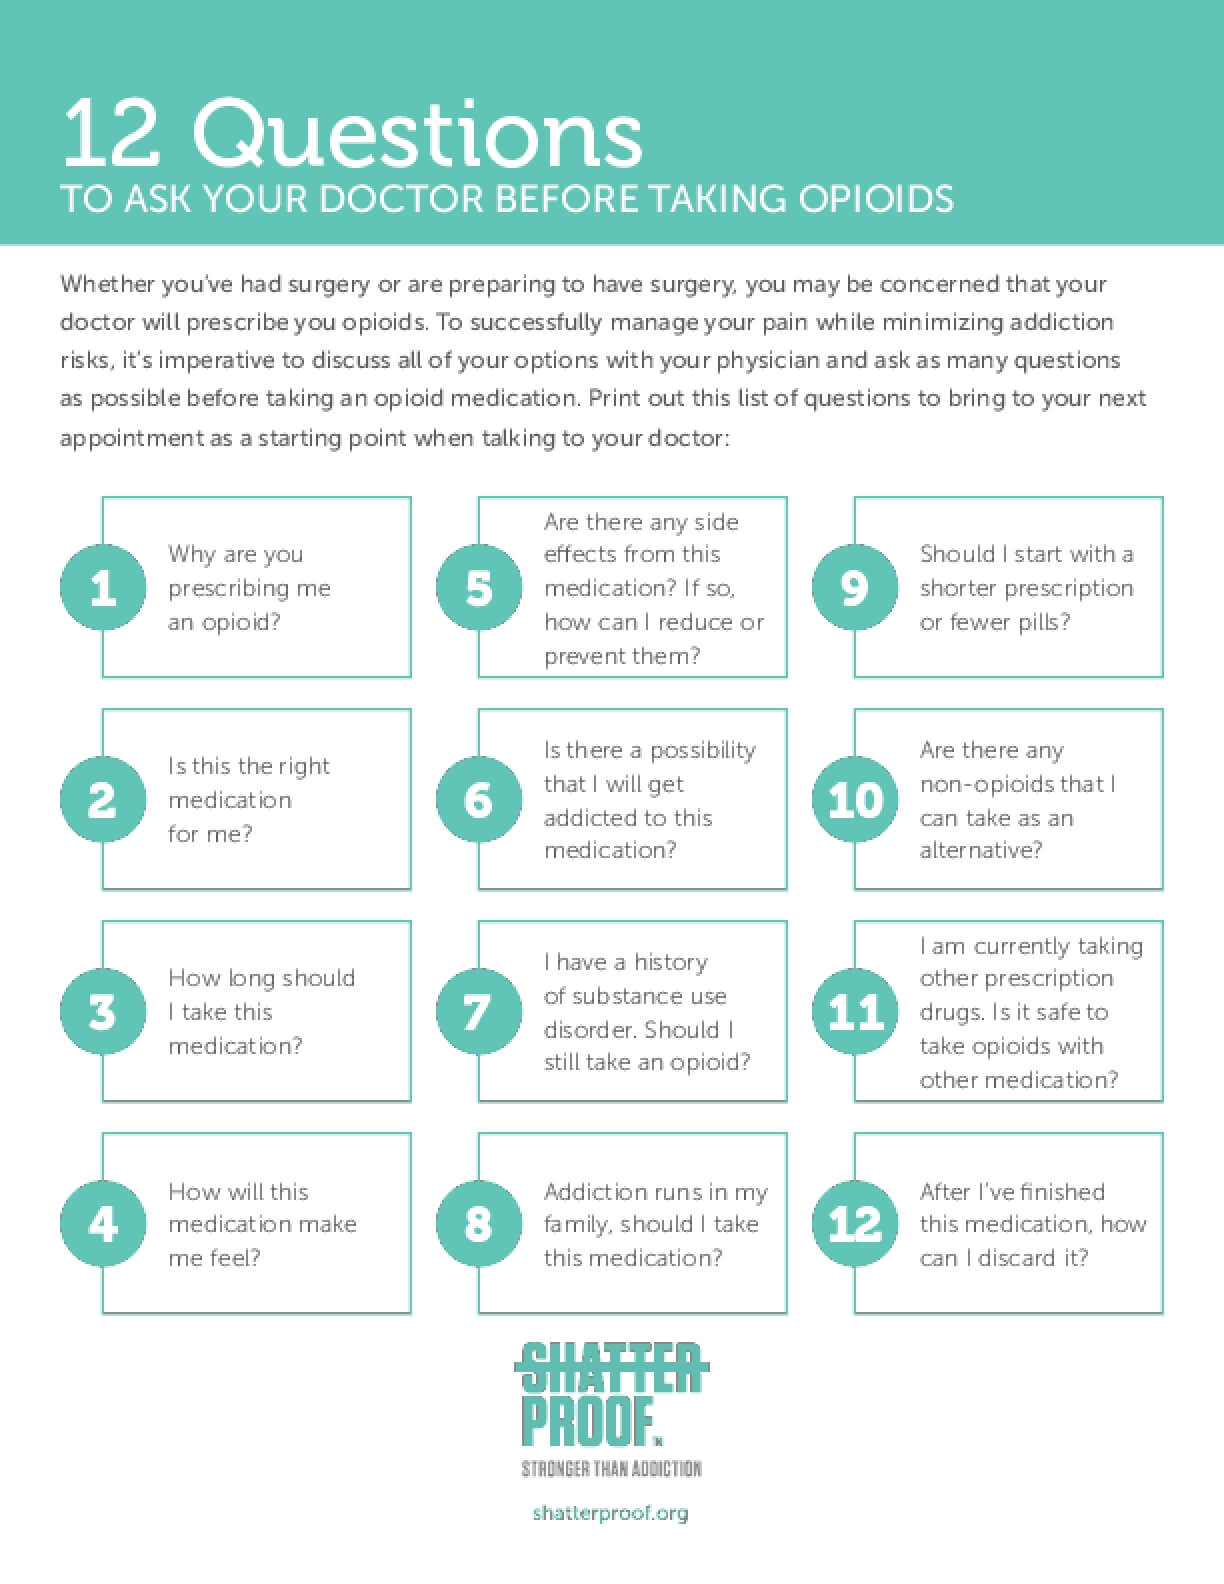 12 Questions to Ask Your Doctor Before Taking Opioids